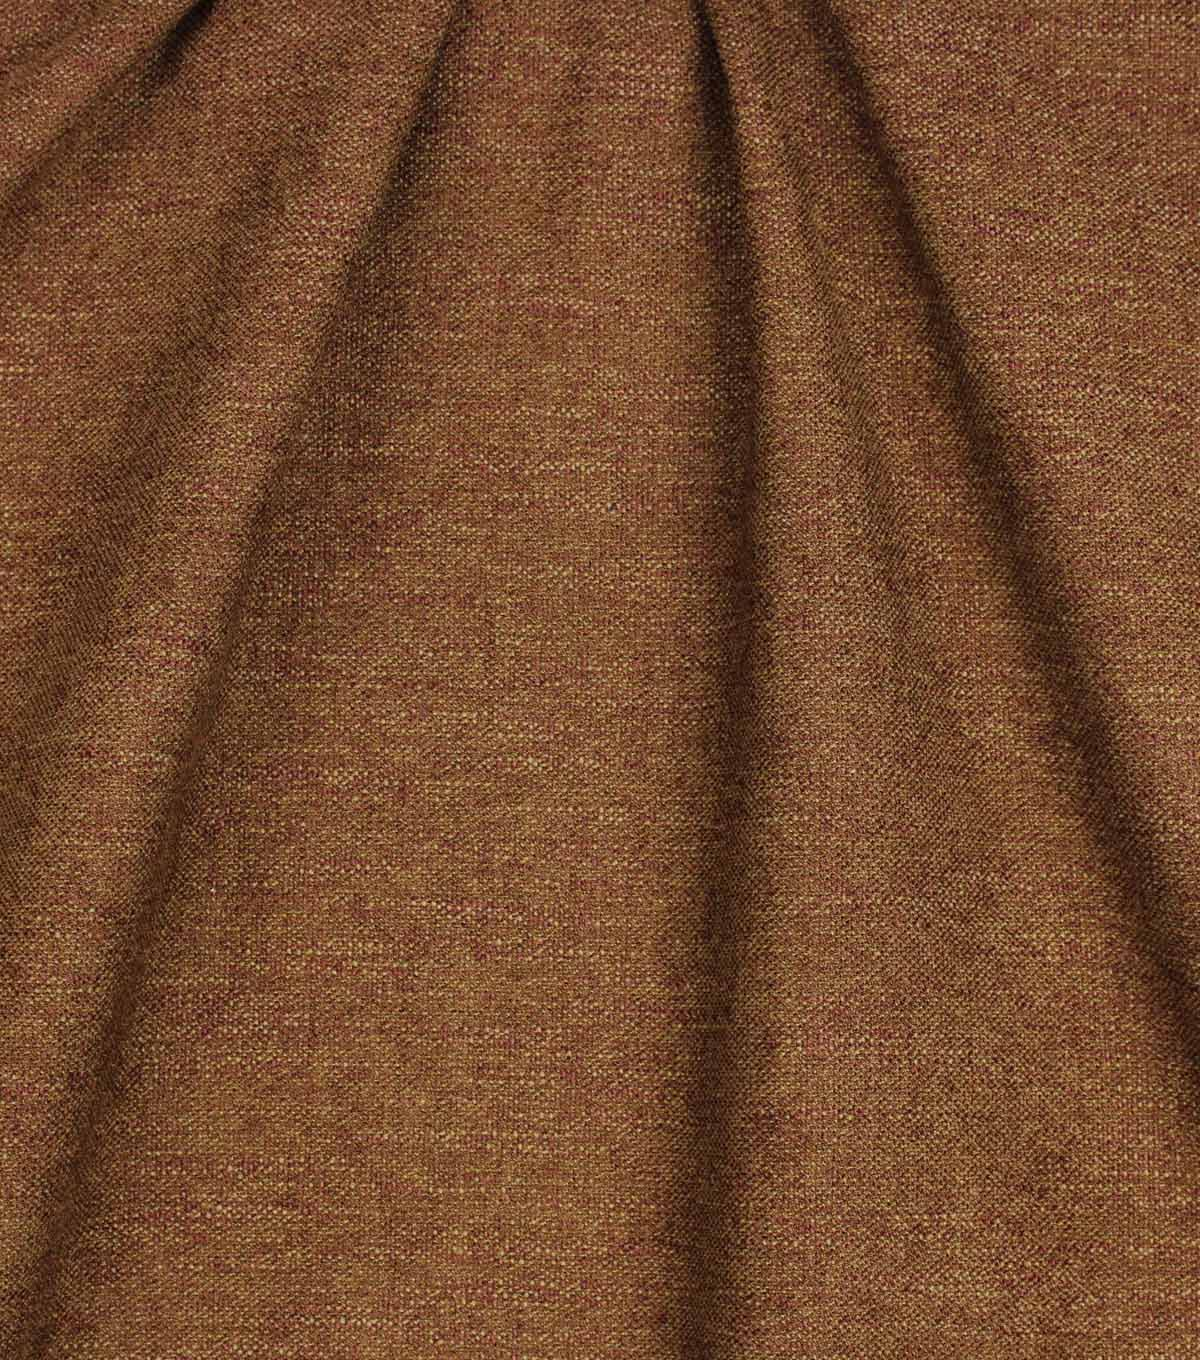 Richloom Studio Multi-Purpose Decor Fabric 54\u0027\u0027-Nutmeg Avignon